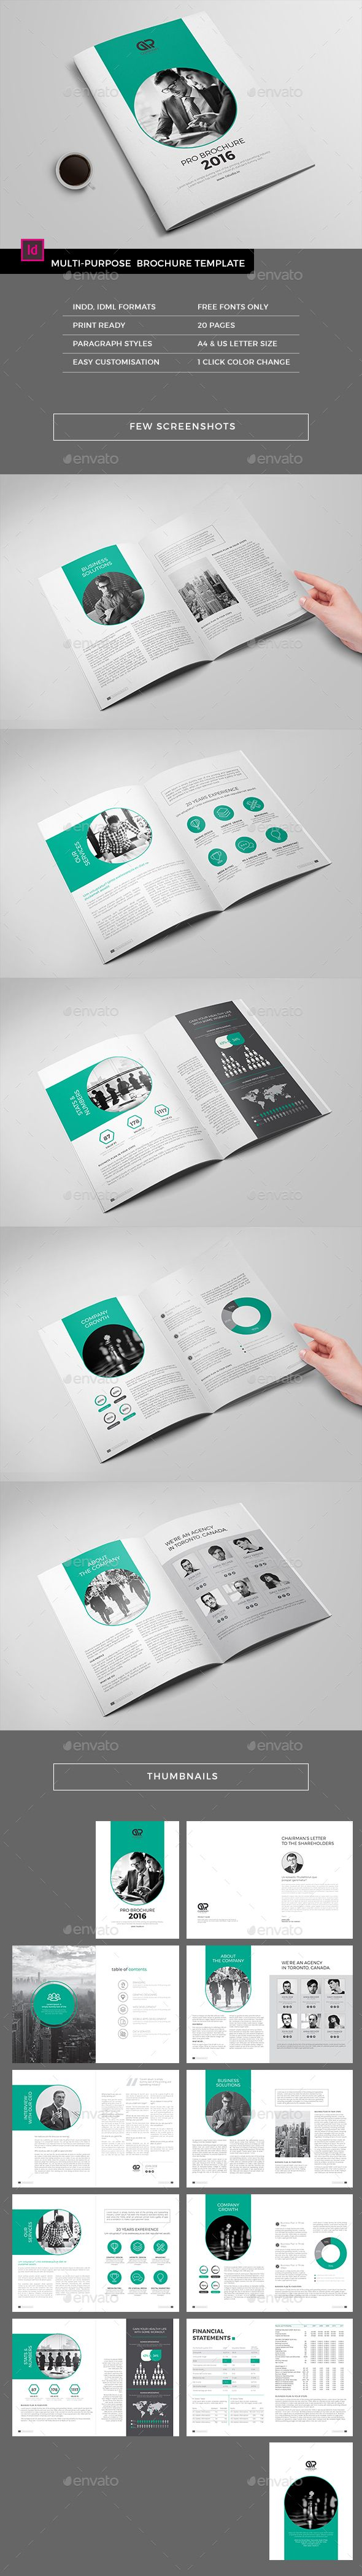 The Corporate Brochure Template InDesign INDD. Download here: http://graphicriver.net/item/the-corporate-brochure/16067146?ref=ksioks